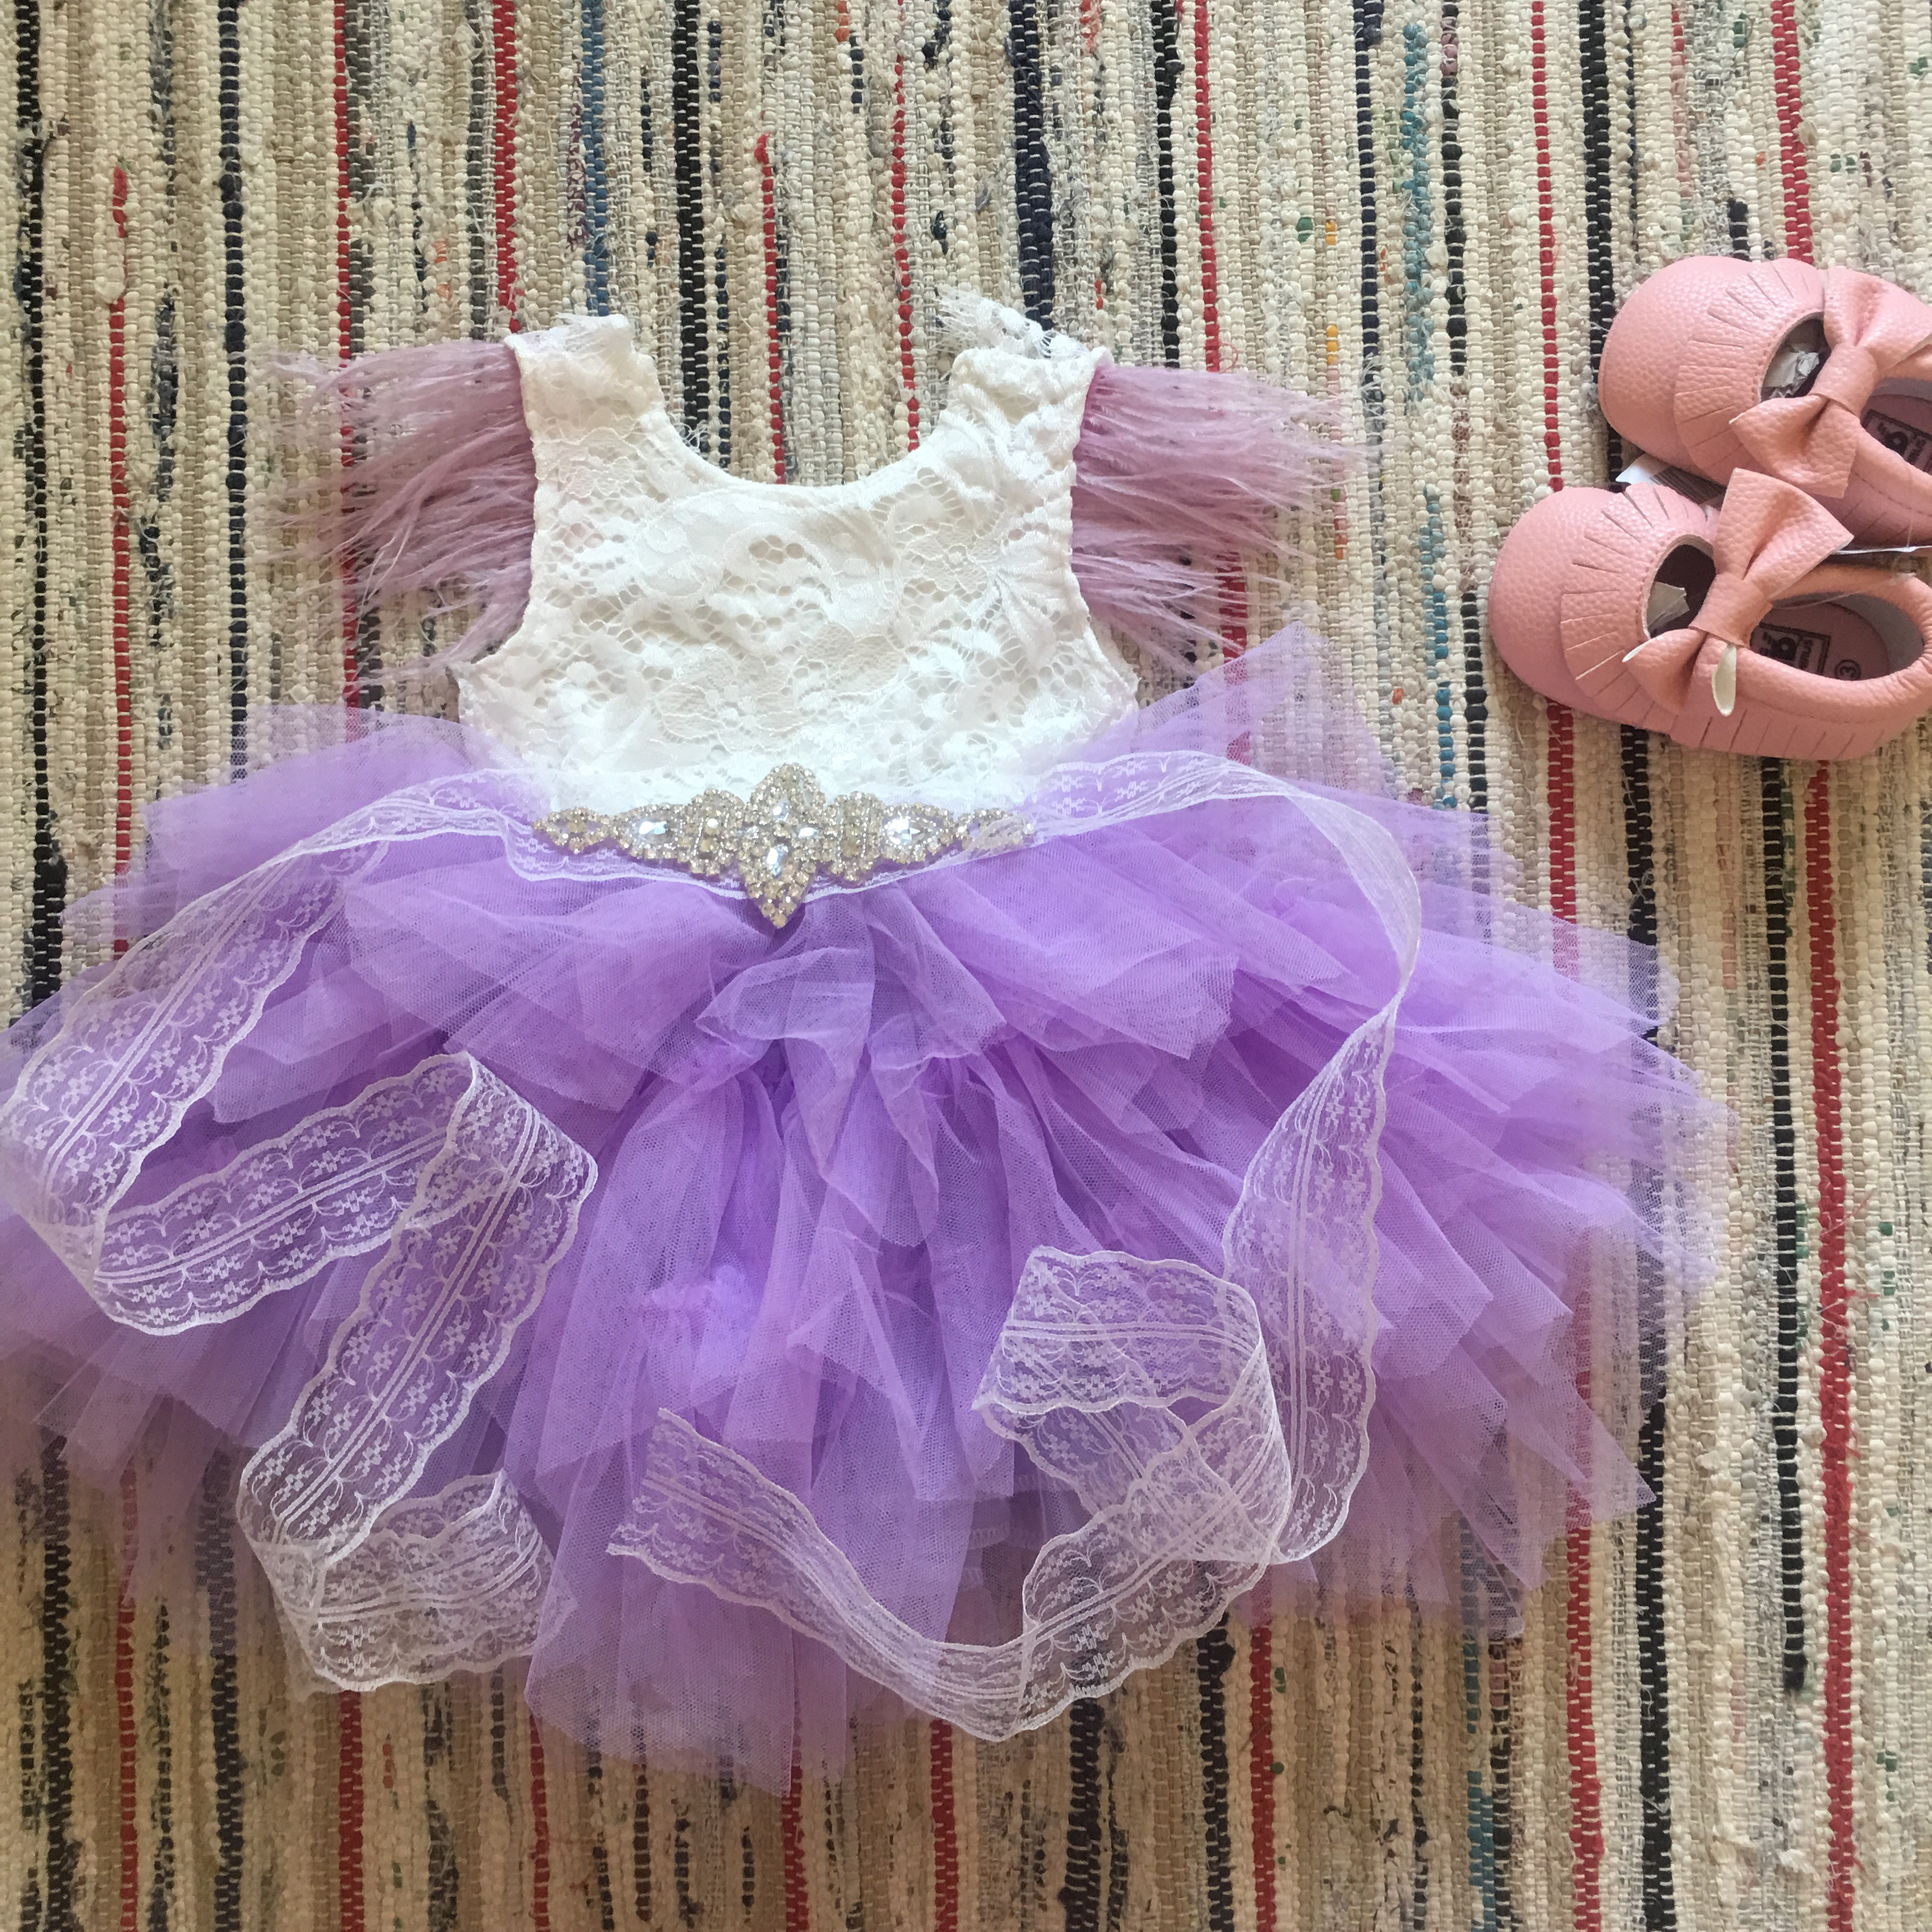 Princess baby feather dress 1st birthday party toddler girls lace flying sleeve summer dress kids tutu clothing with sashes 6